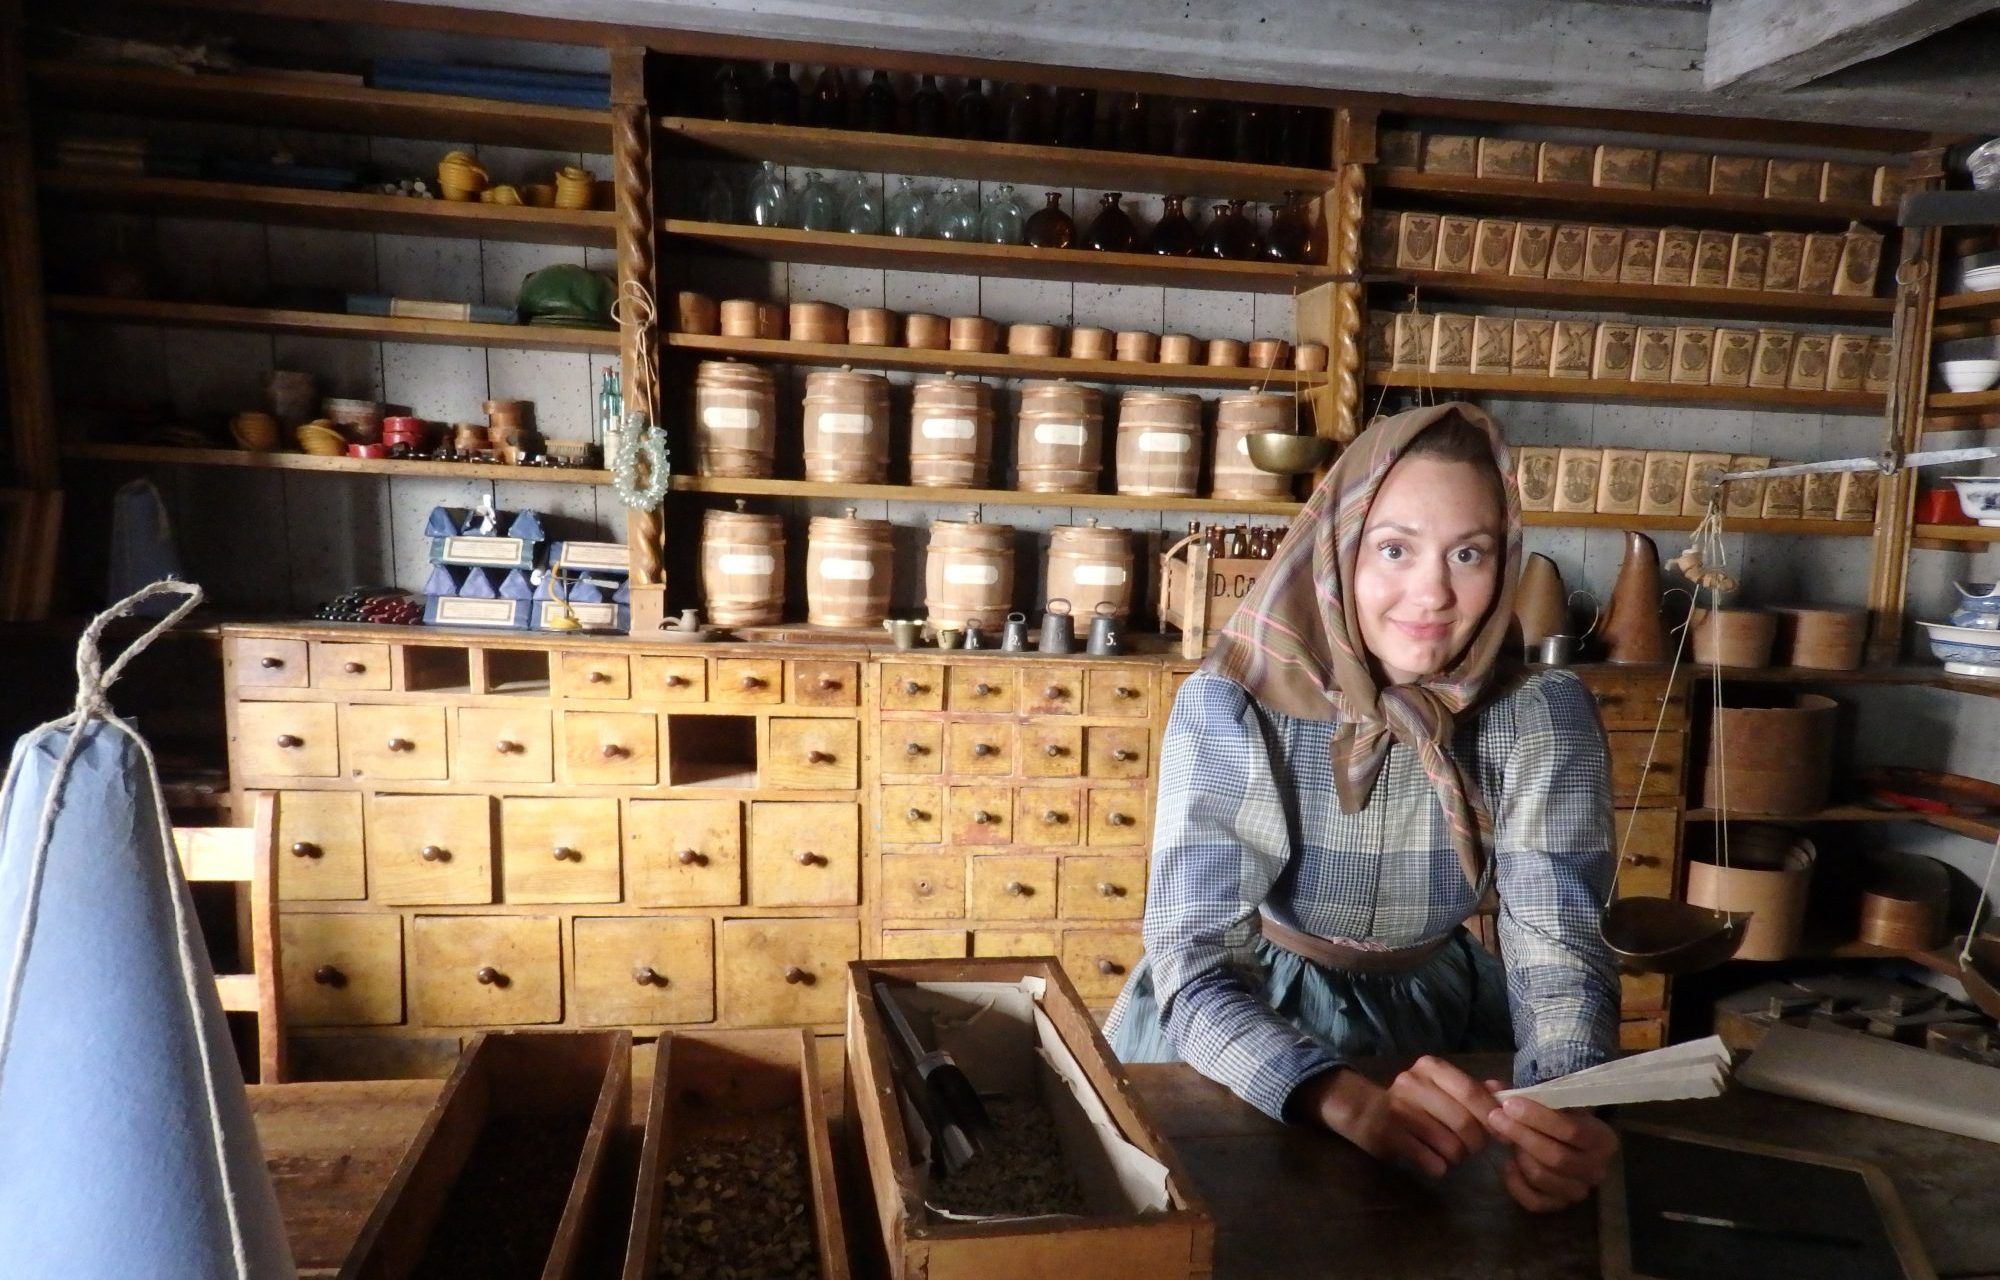 a spice shop, the precursor to the grocery store, at Skansen, Stockholm, Sweden